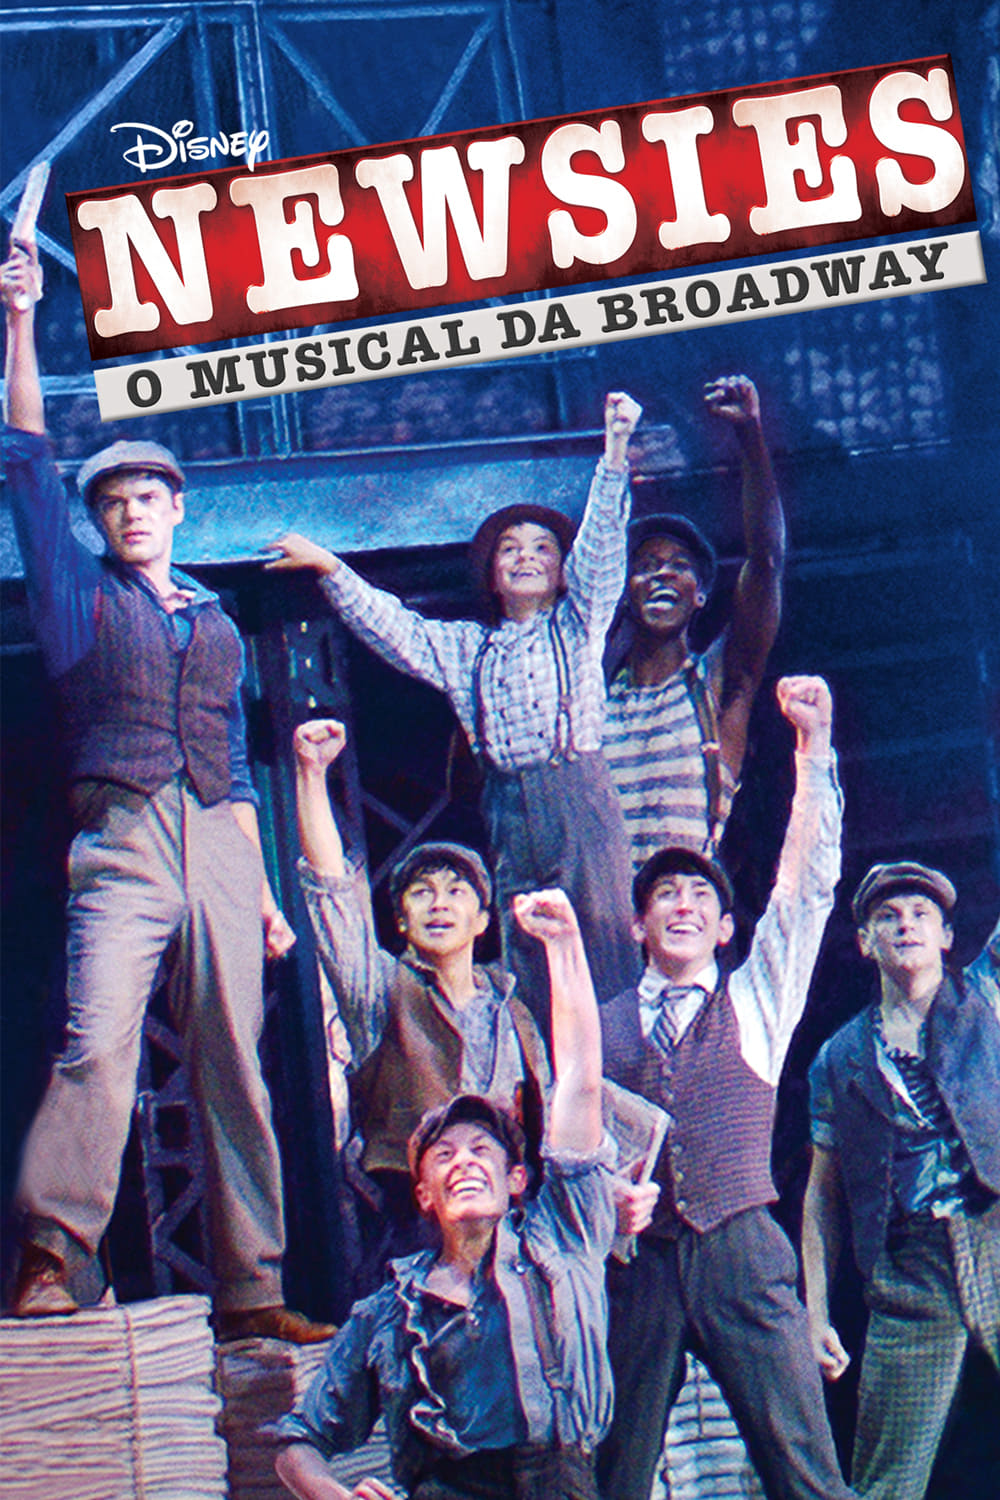 Newsies: O Musical da Broadway 2017 Legendado